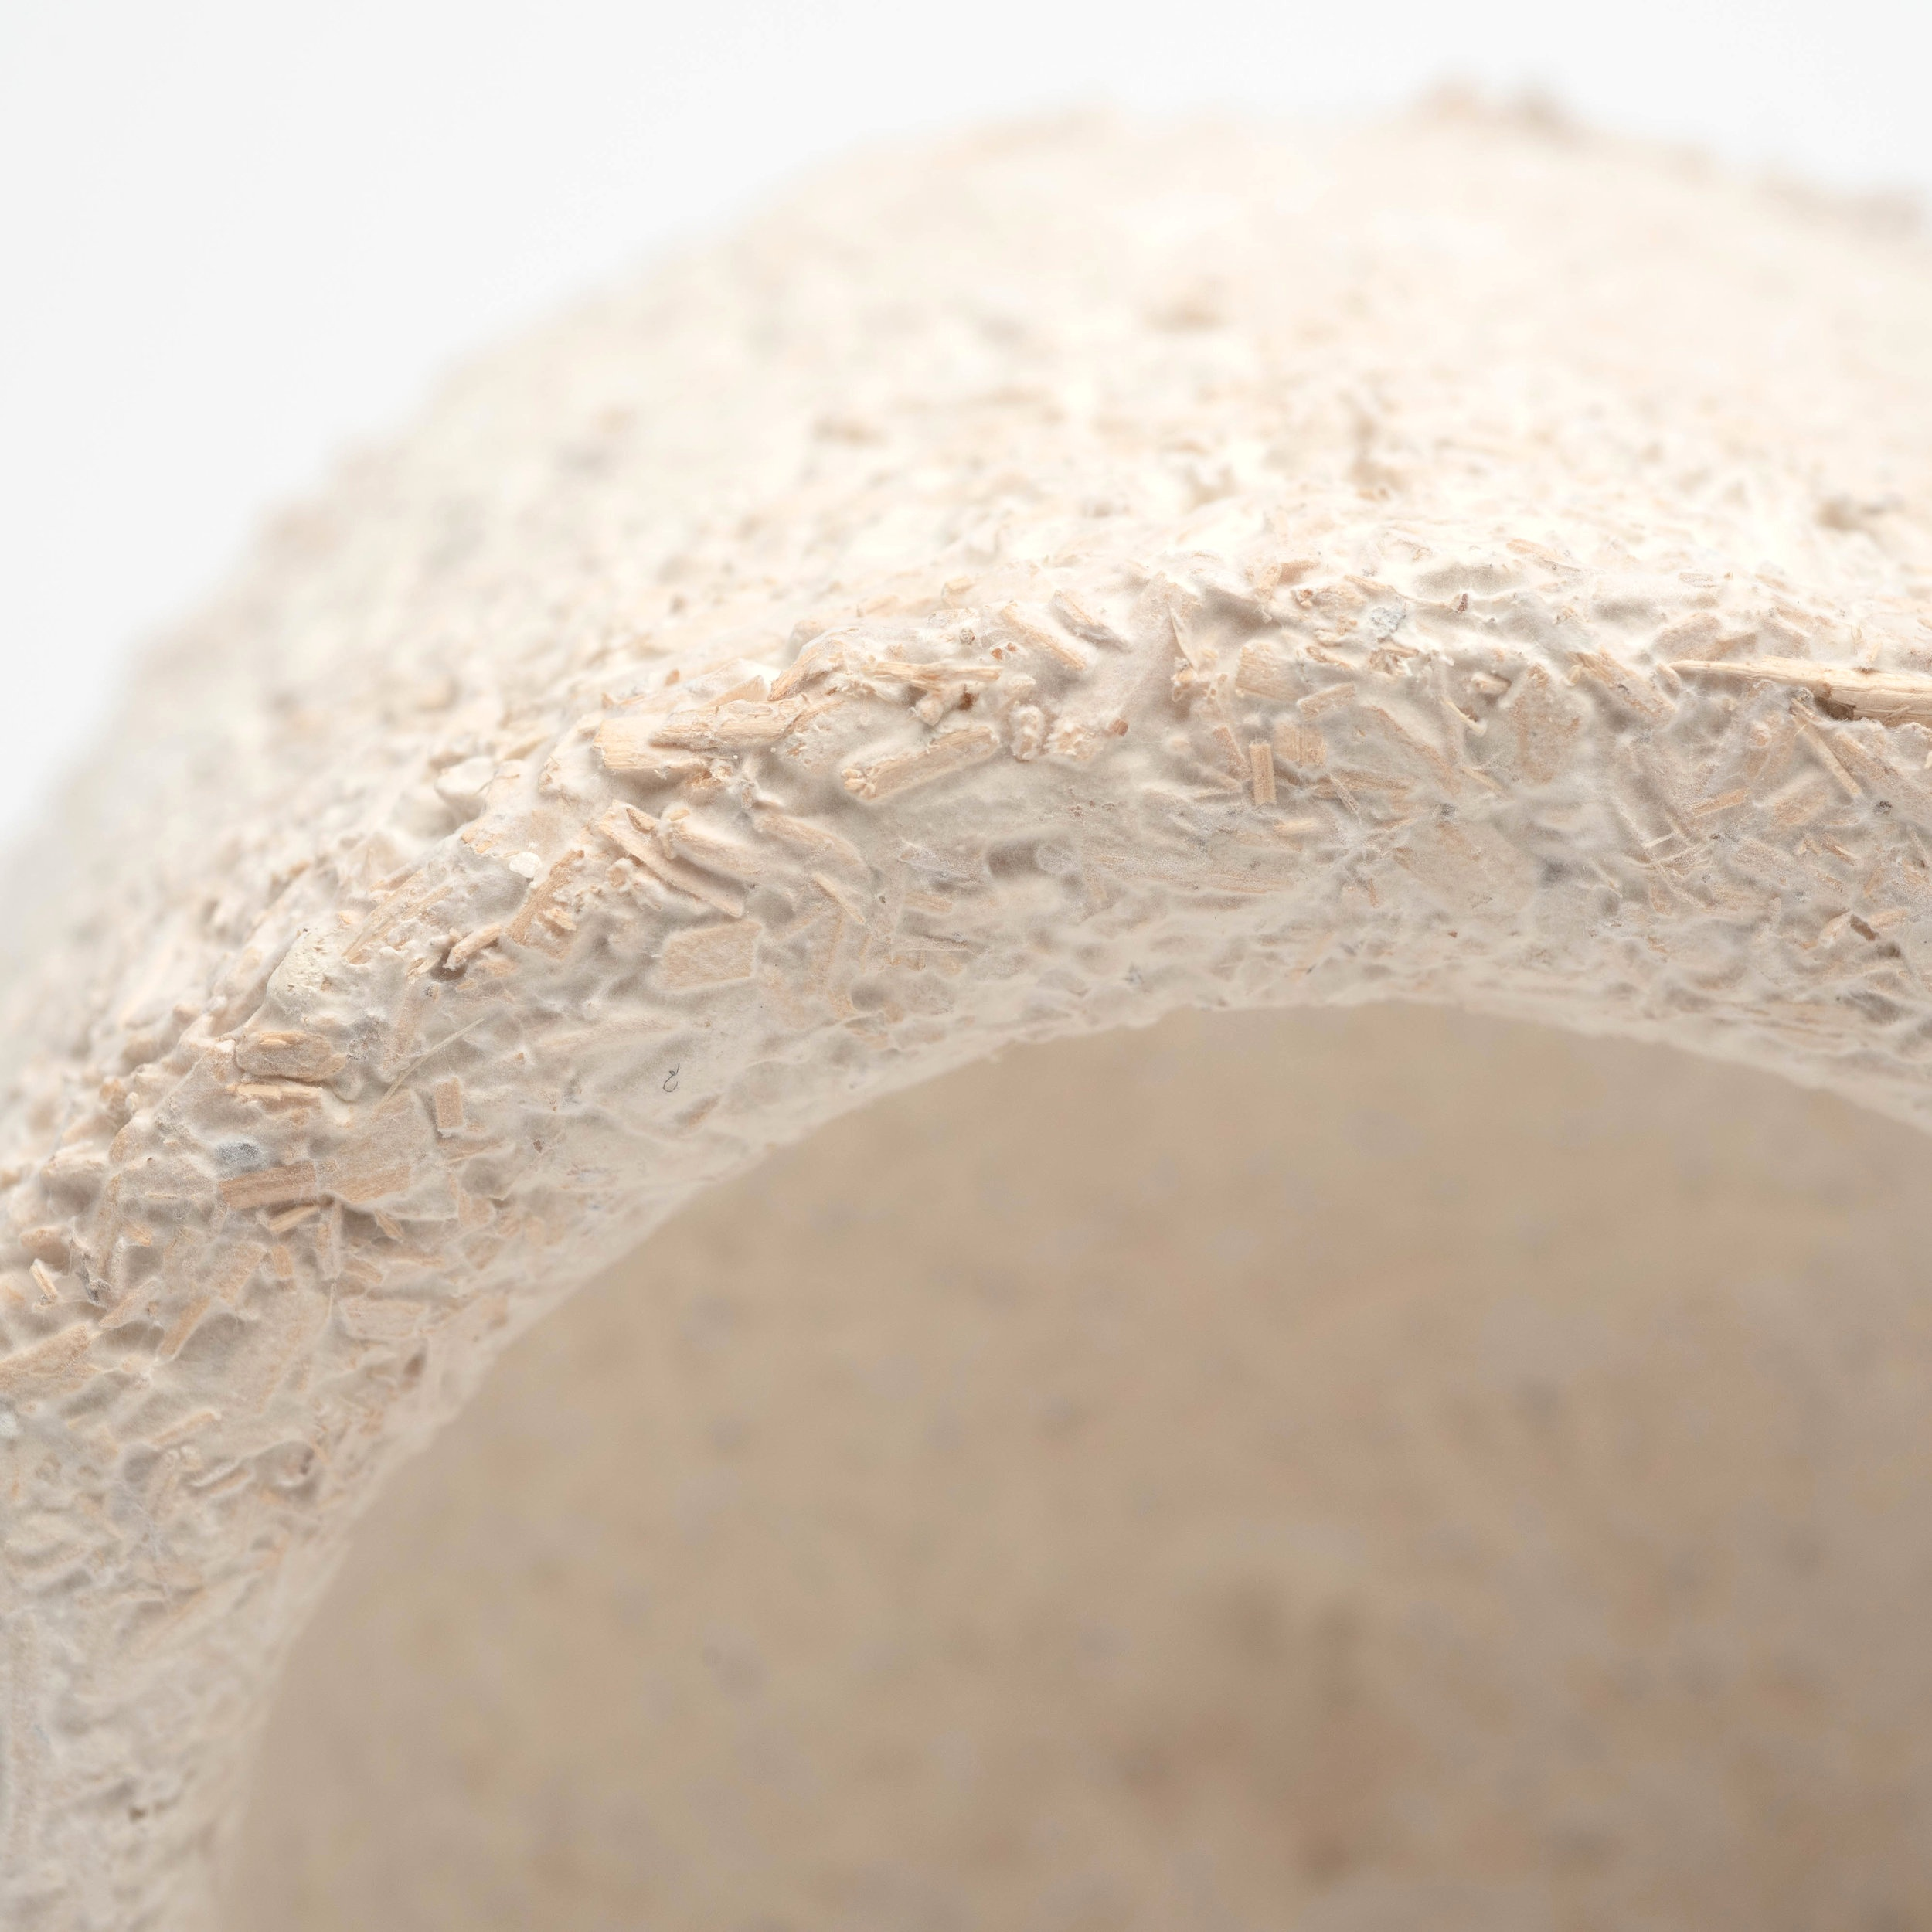 MycoComposite™ - Our MycoComposite™ platform uses mycelium, the root structure of mushrooms, to bind together organic agricultural byproducts, such as wood chips, to produce durable, bio-based and 100% compostable materials.